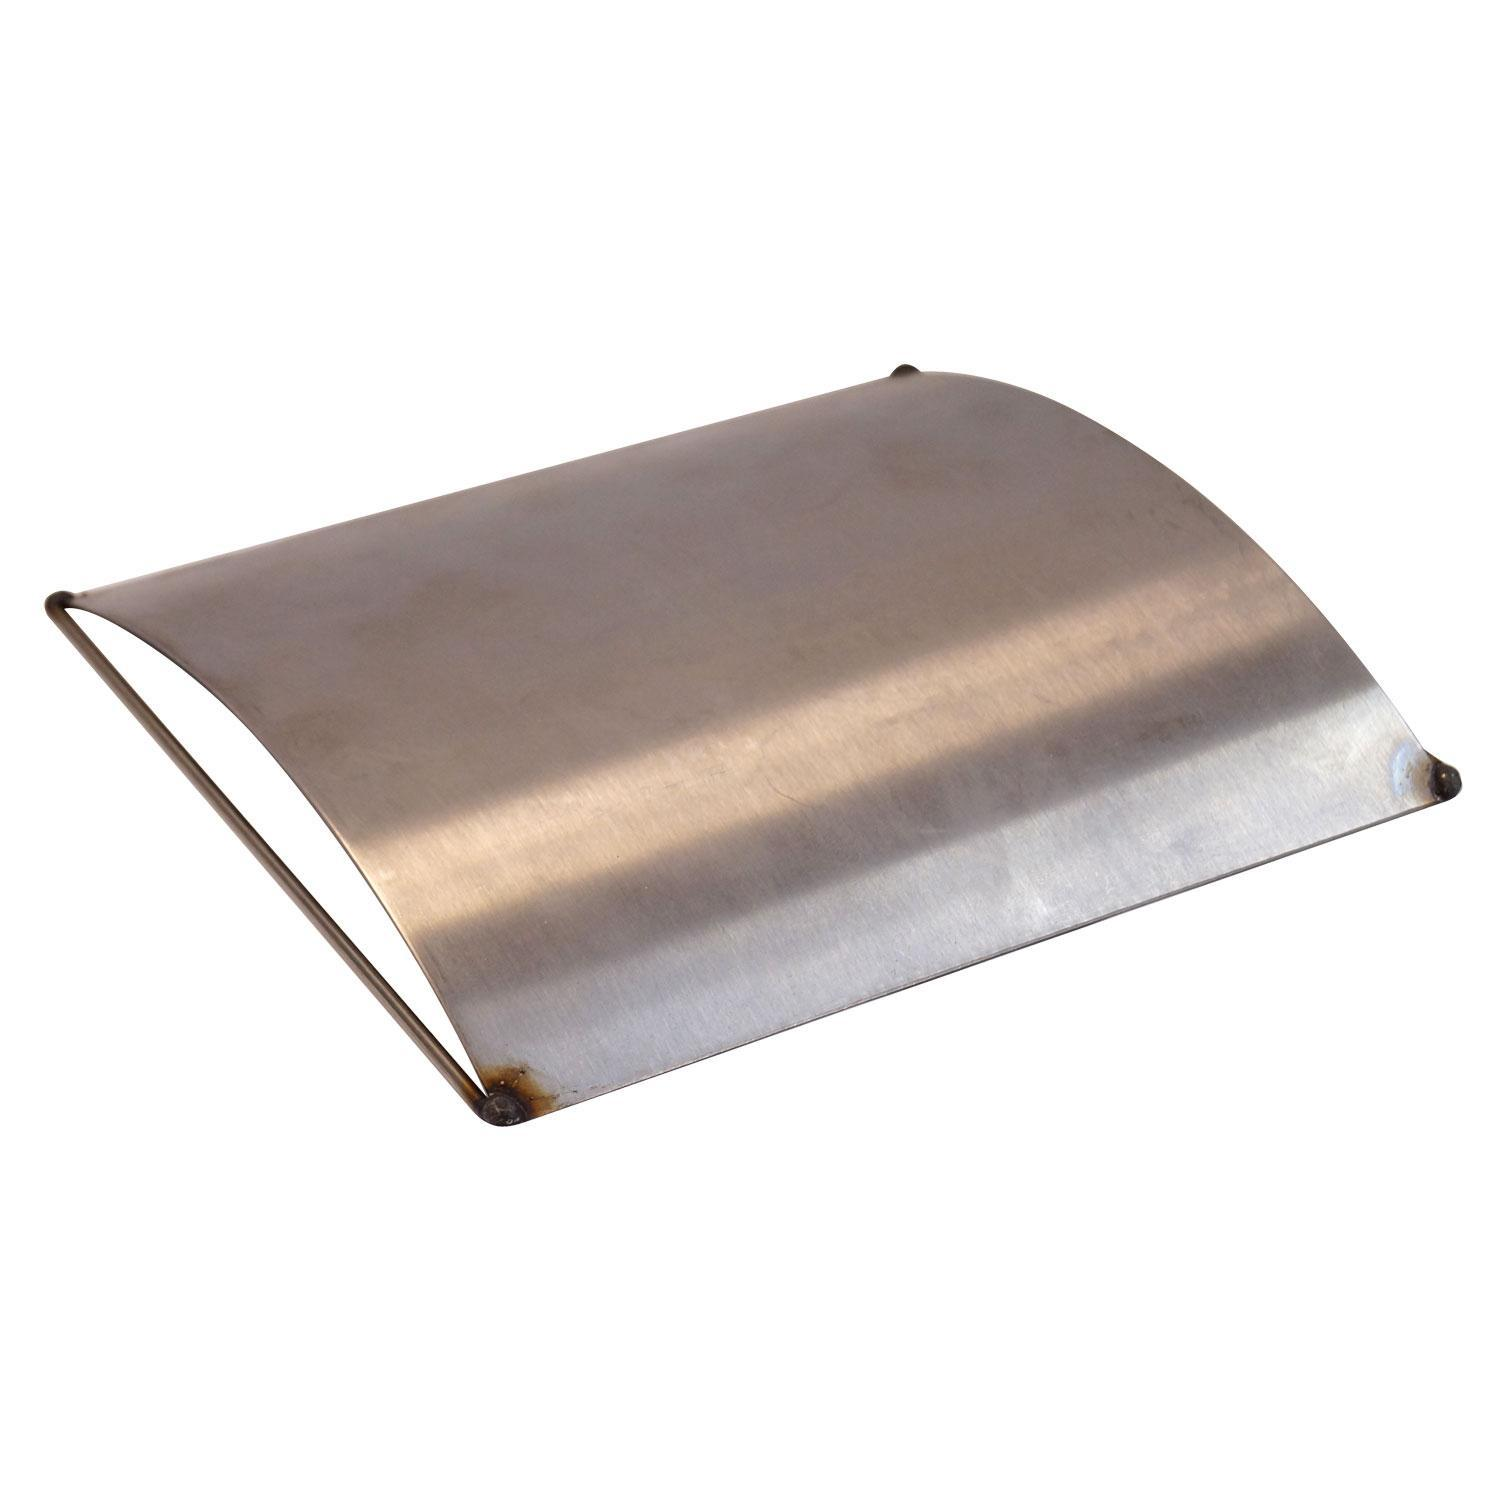 8 Stainless Steel Reversible Mold